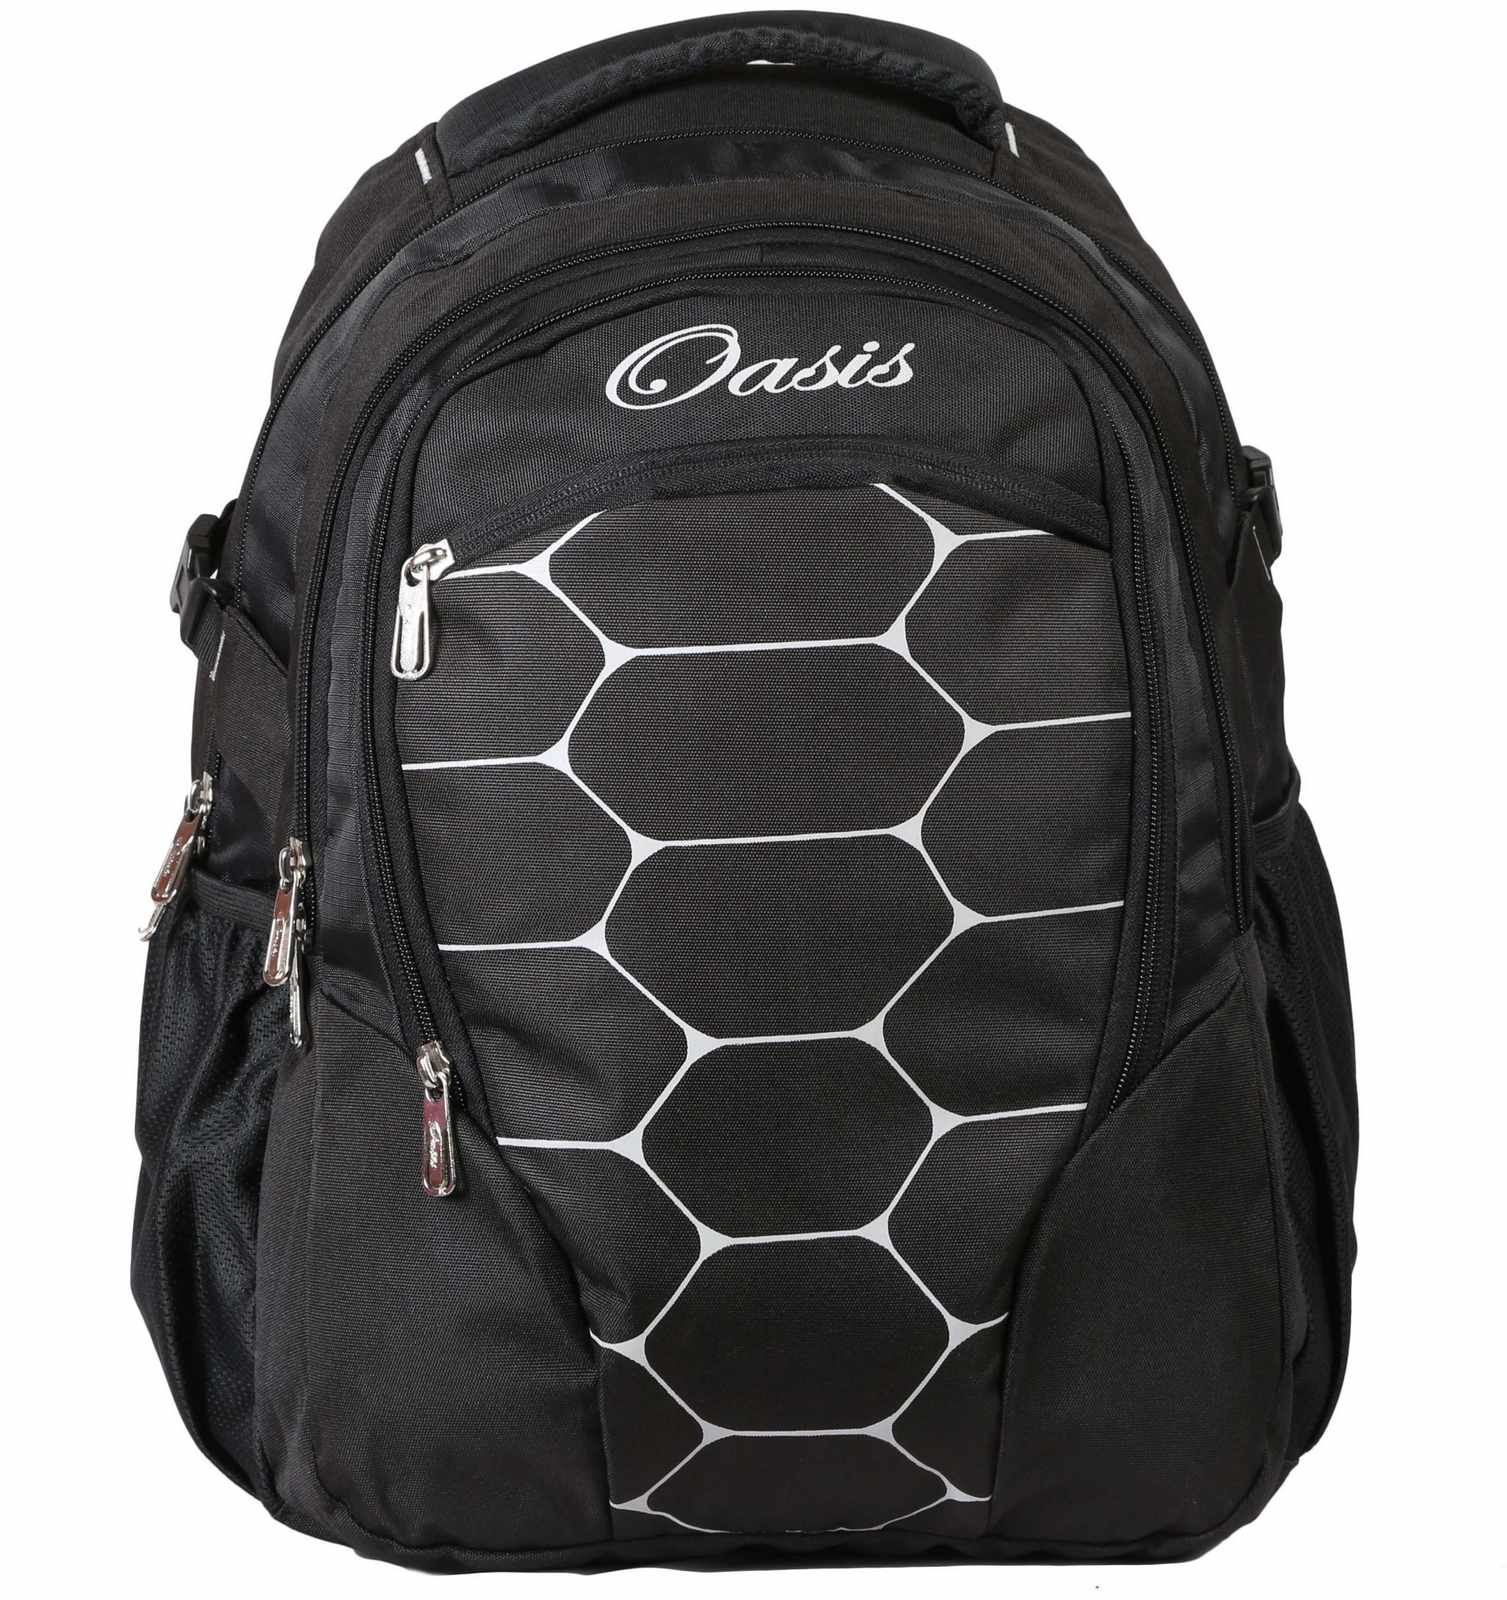 Oasis Bags in Bangalore